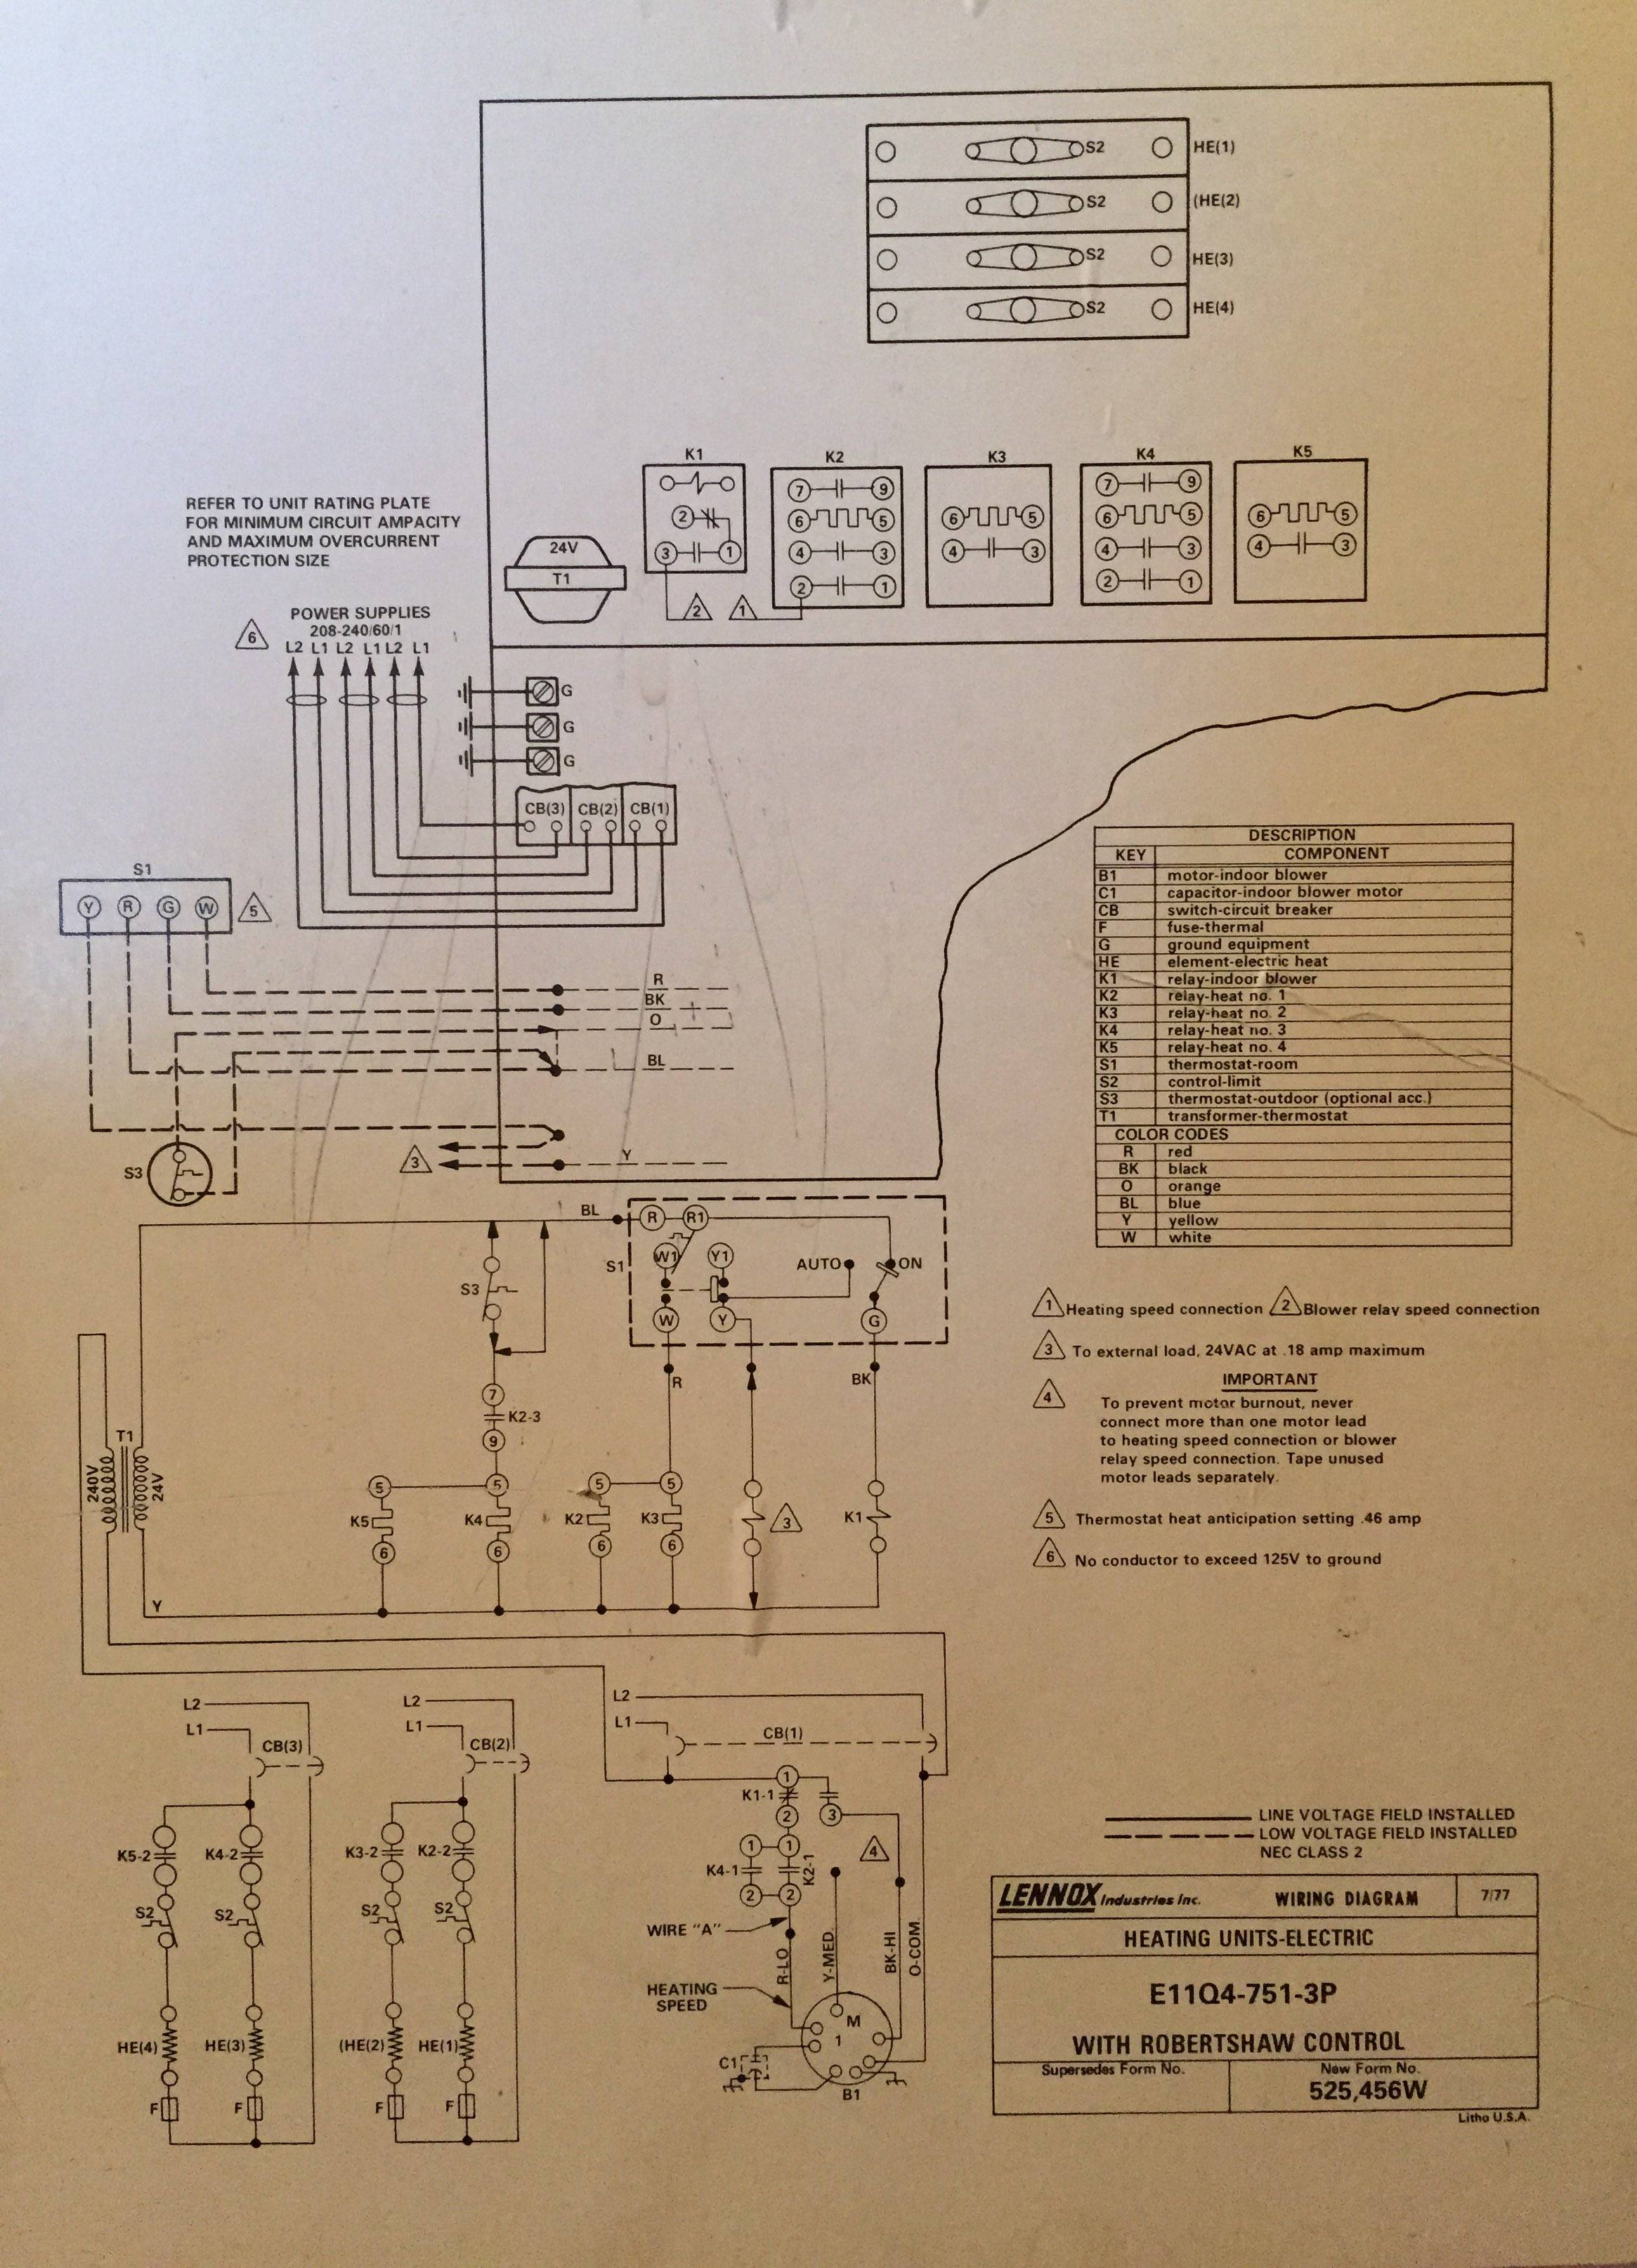 wiring diagram for lennox gas furnace mitsubishi pajero electrical how to add a c wire an old system home